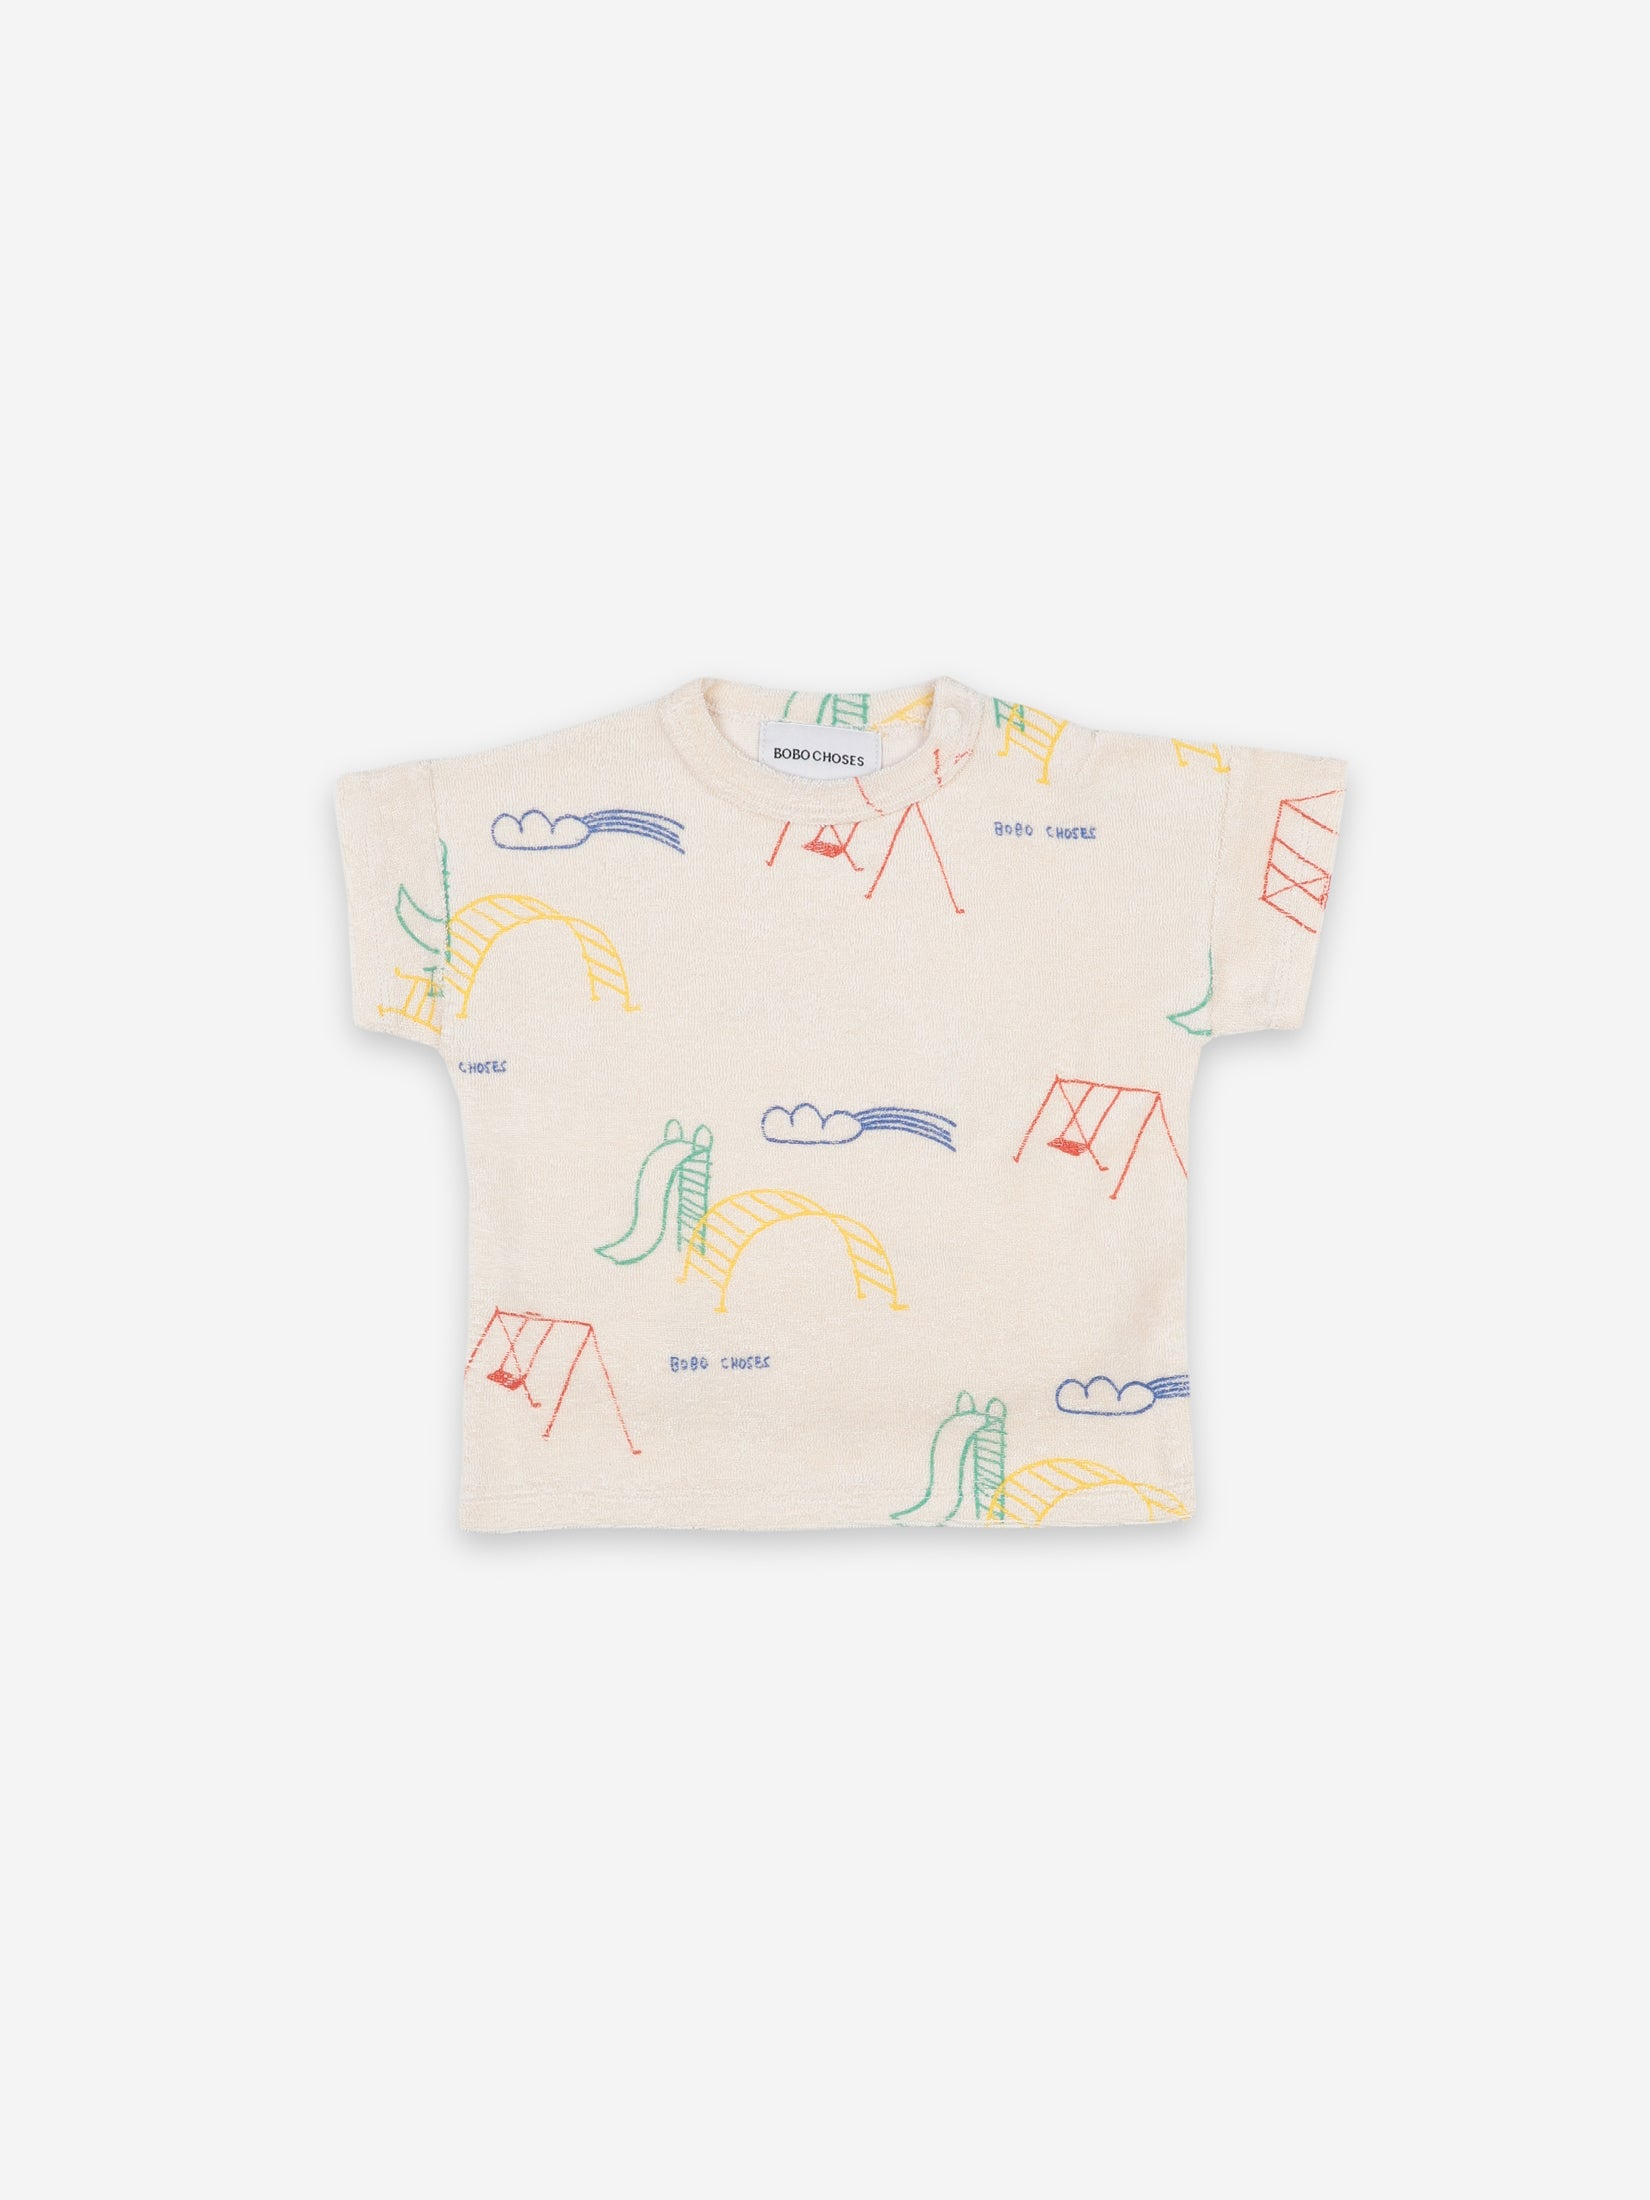 Bobo Choses Play Ground All Over Short Sleeve T-Shirt | Sweet Threads